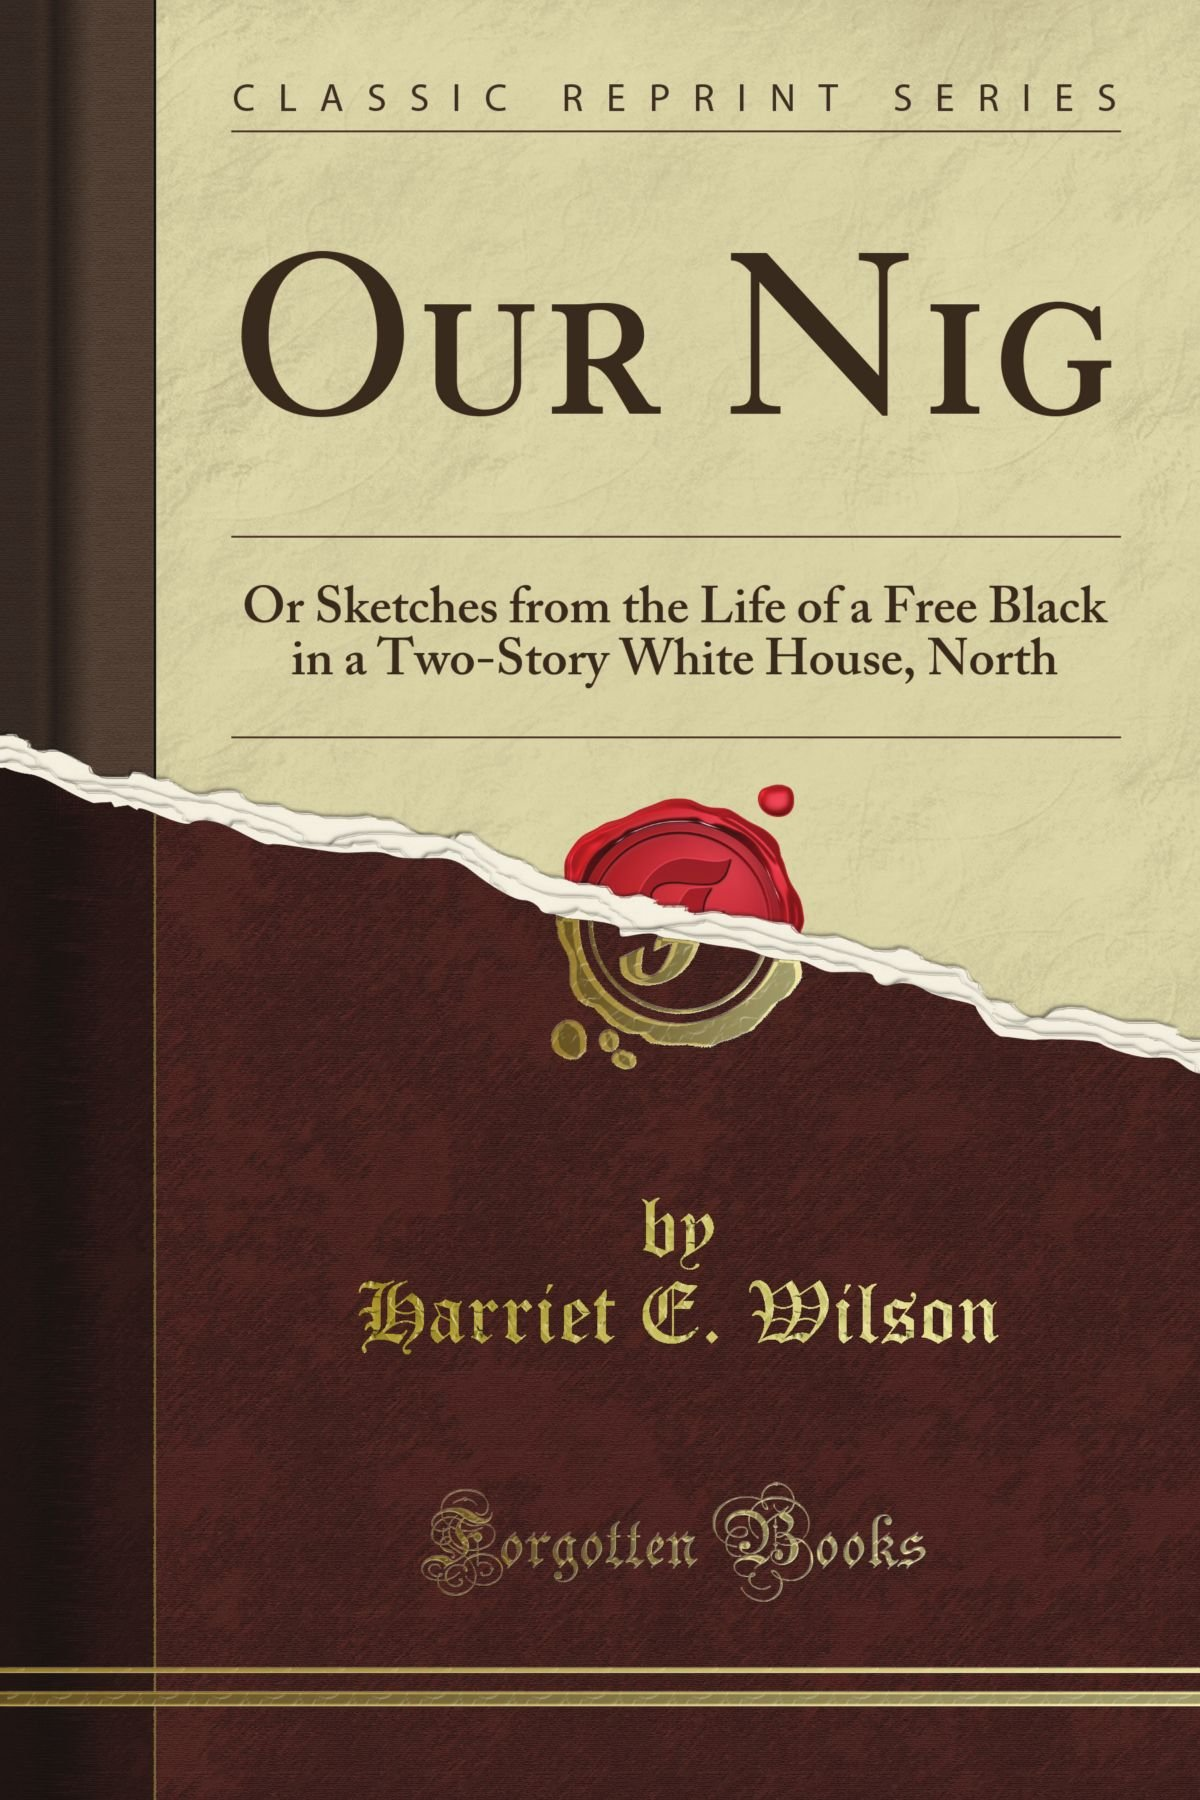 Our Nig: Or Sketches from the Life of a Free Black in a Two-Story White House, North (Classic Reprint) pdf